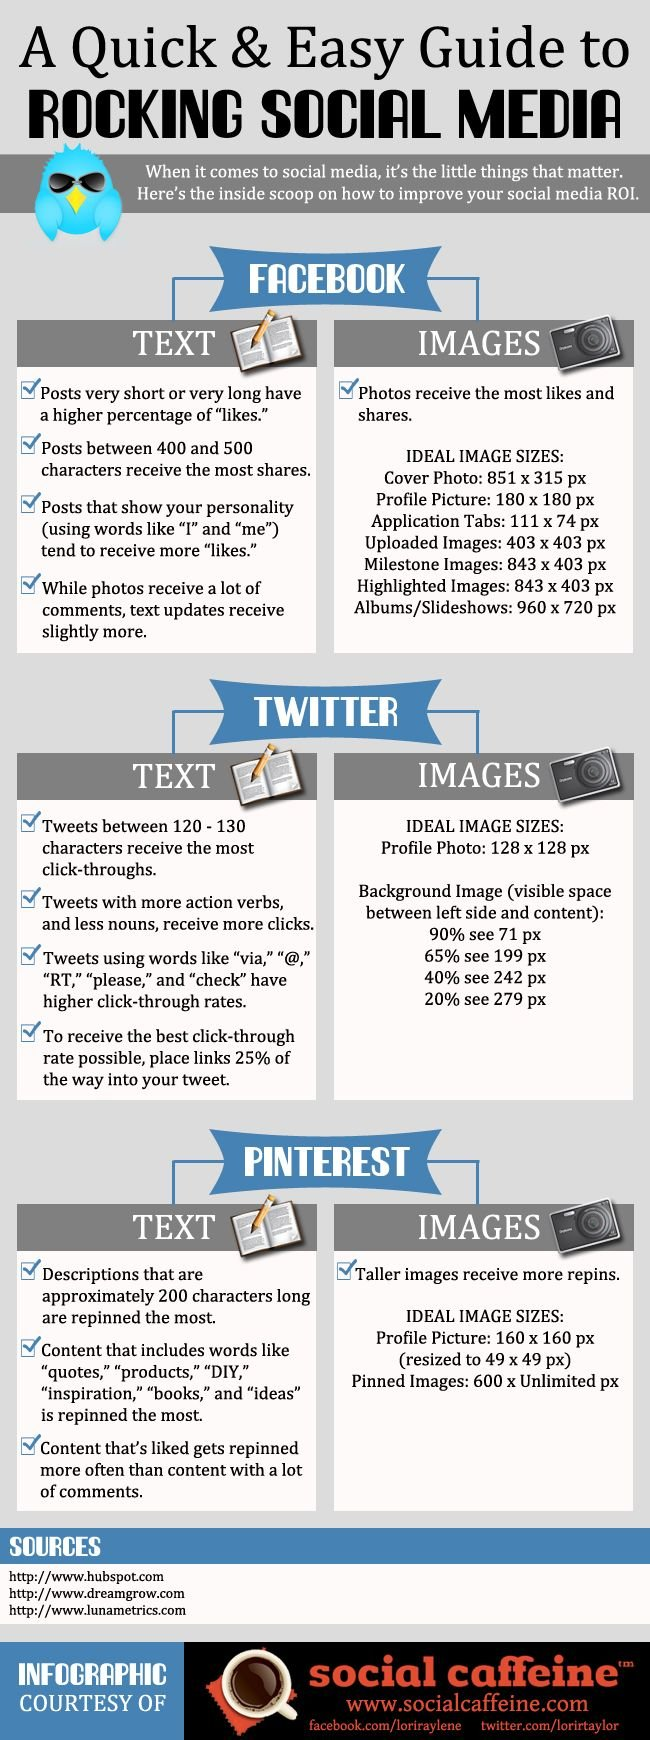 A quick and easy guide to Rocking Social Media #infographic